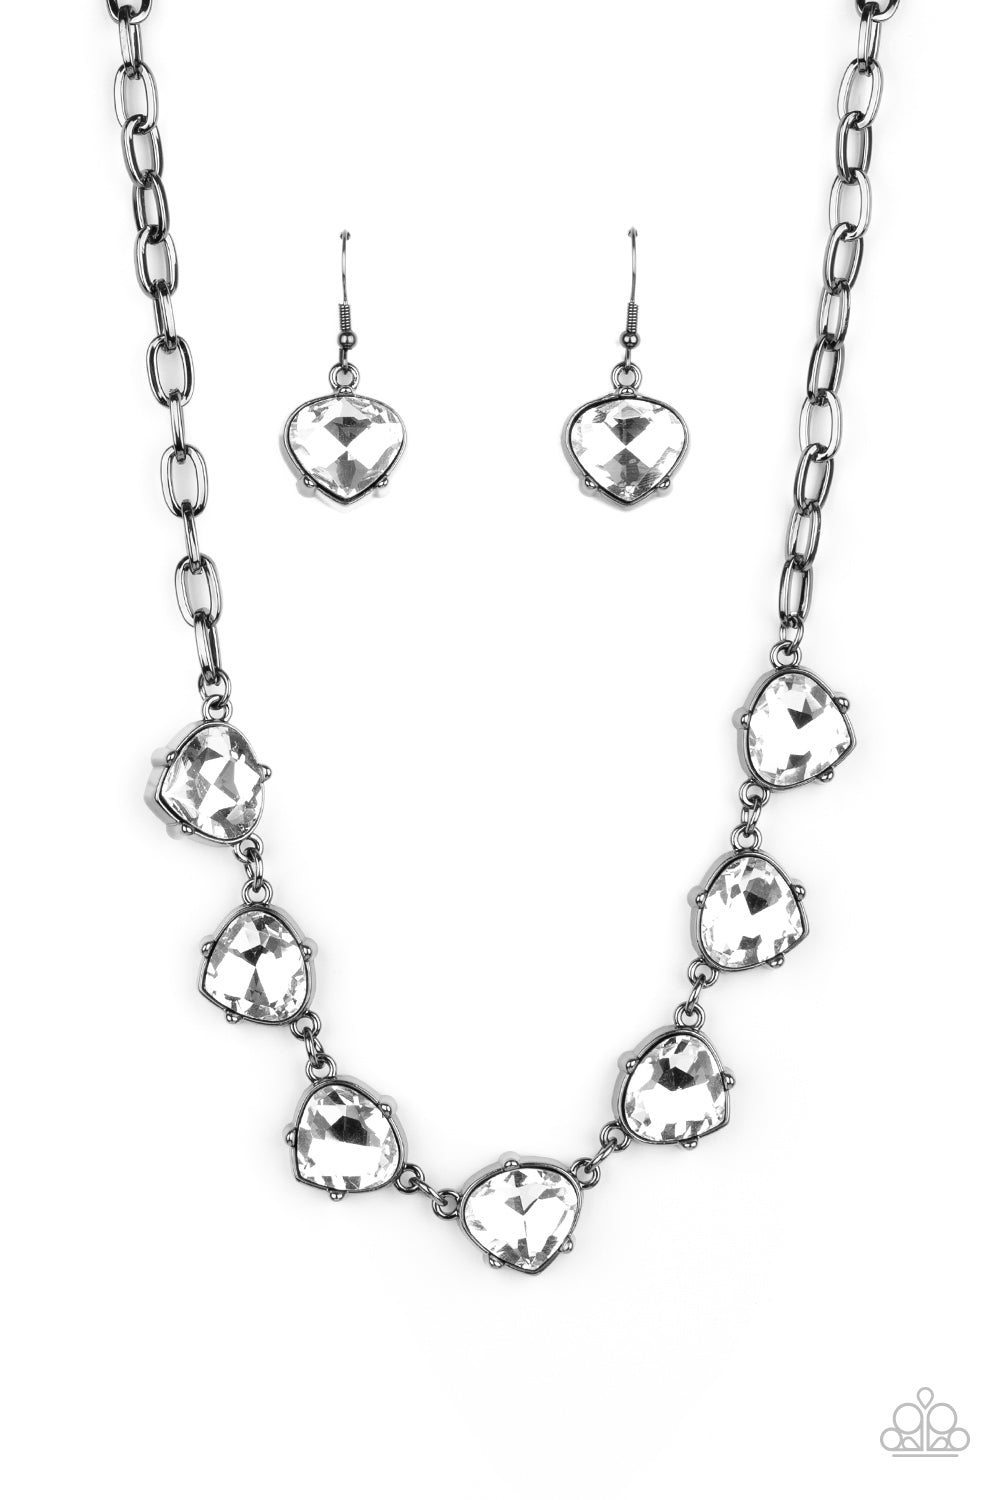 Paparazzi Necklace LOP Dec 2020 ~ Star Quality Sparkle - Black